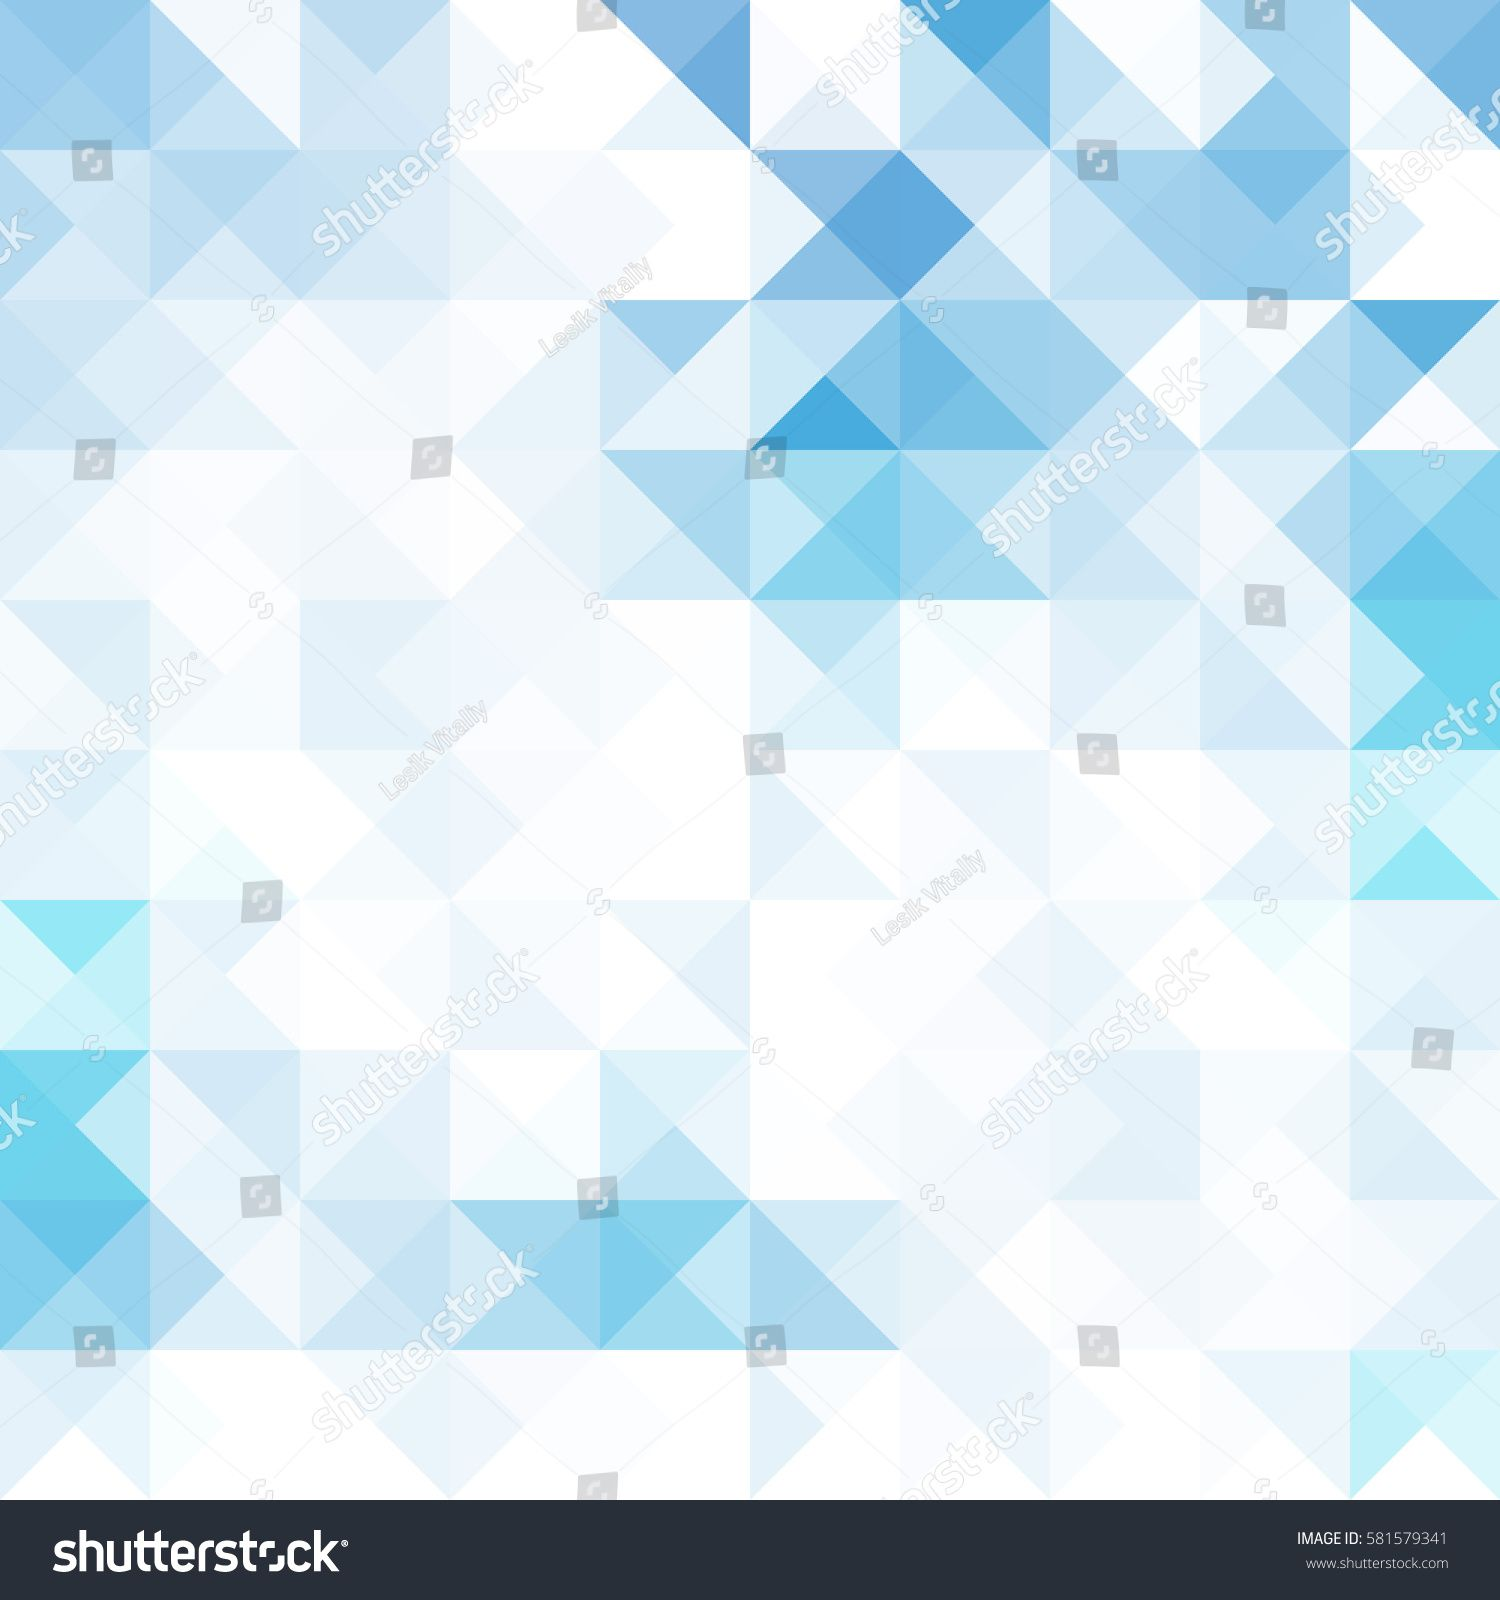 Abstract Geometric Background With Transparent Triangles Vector